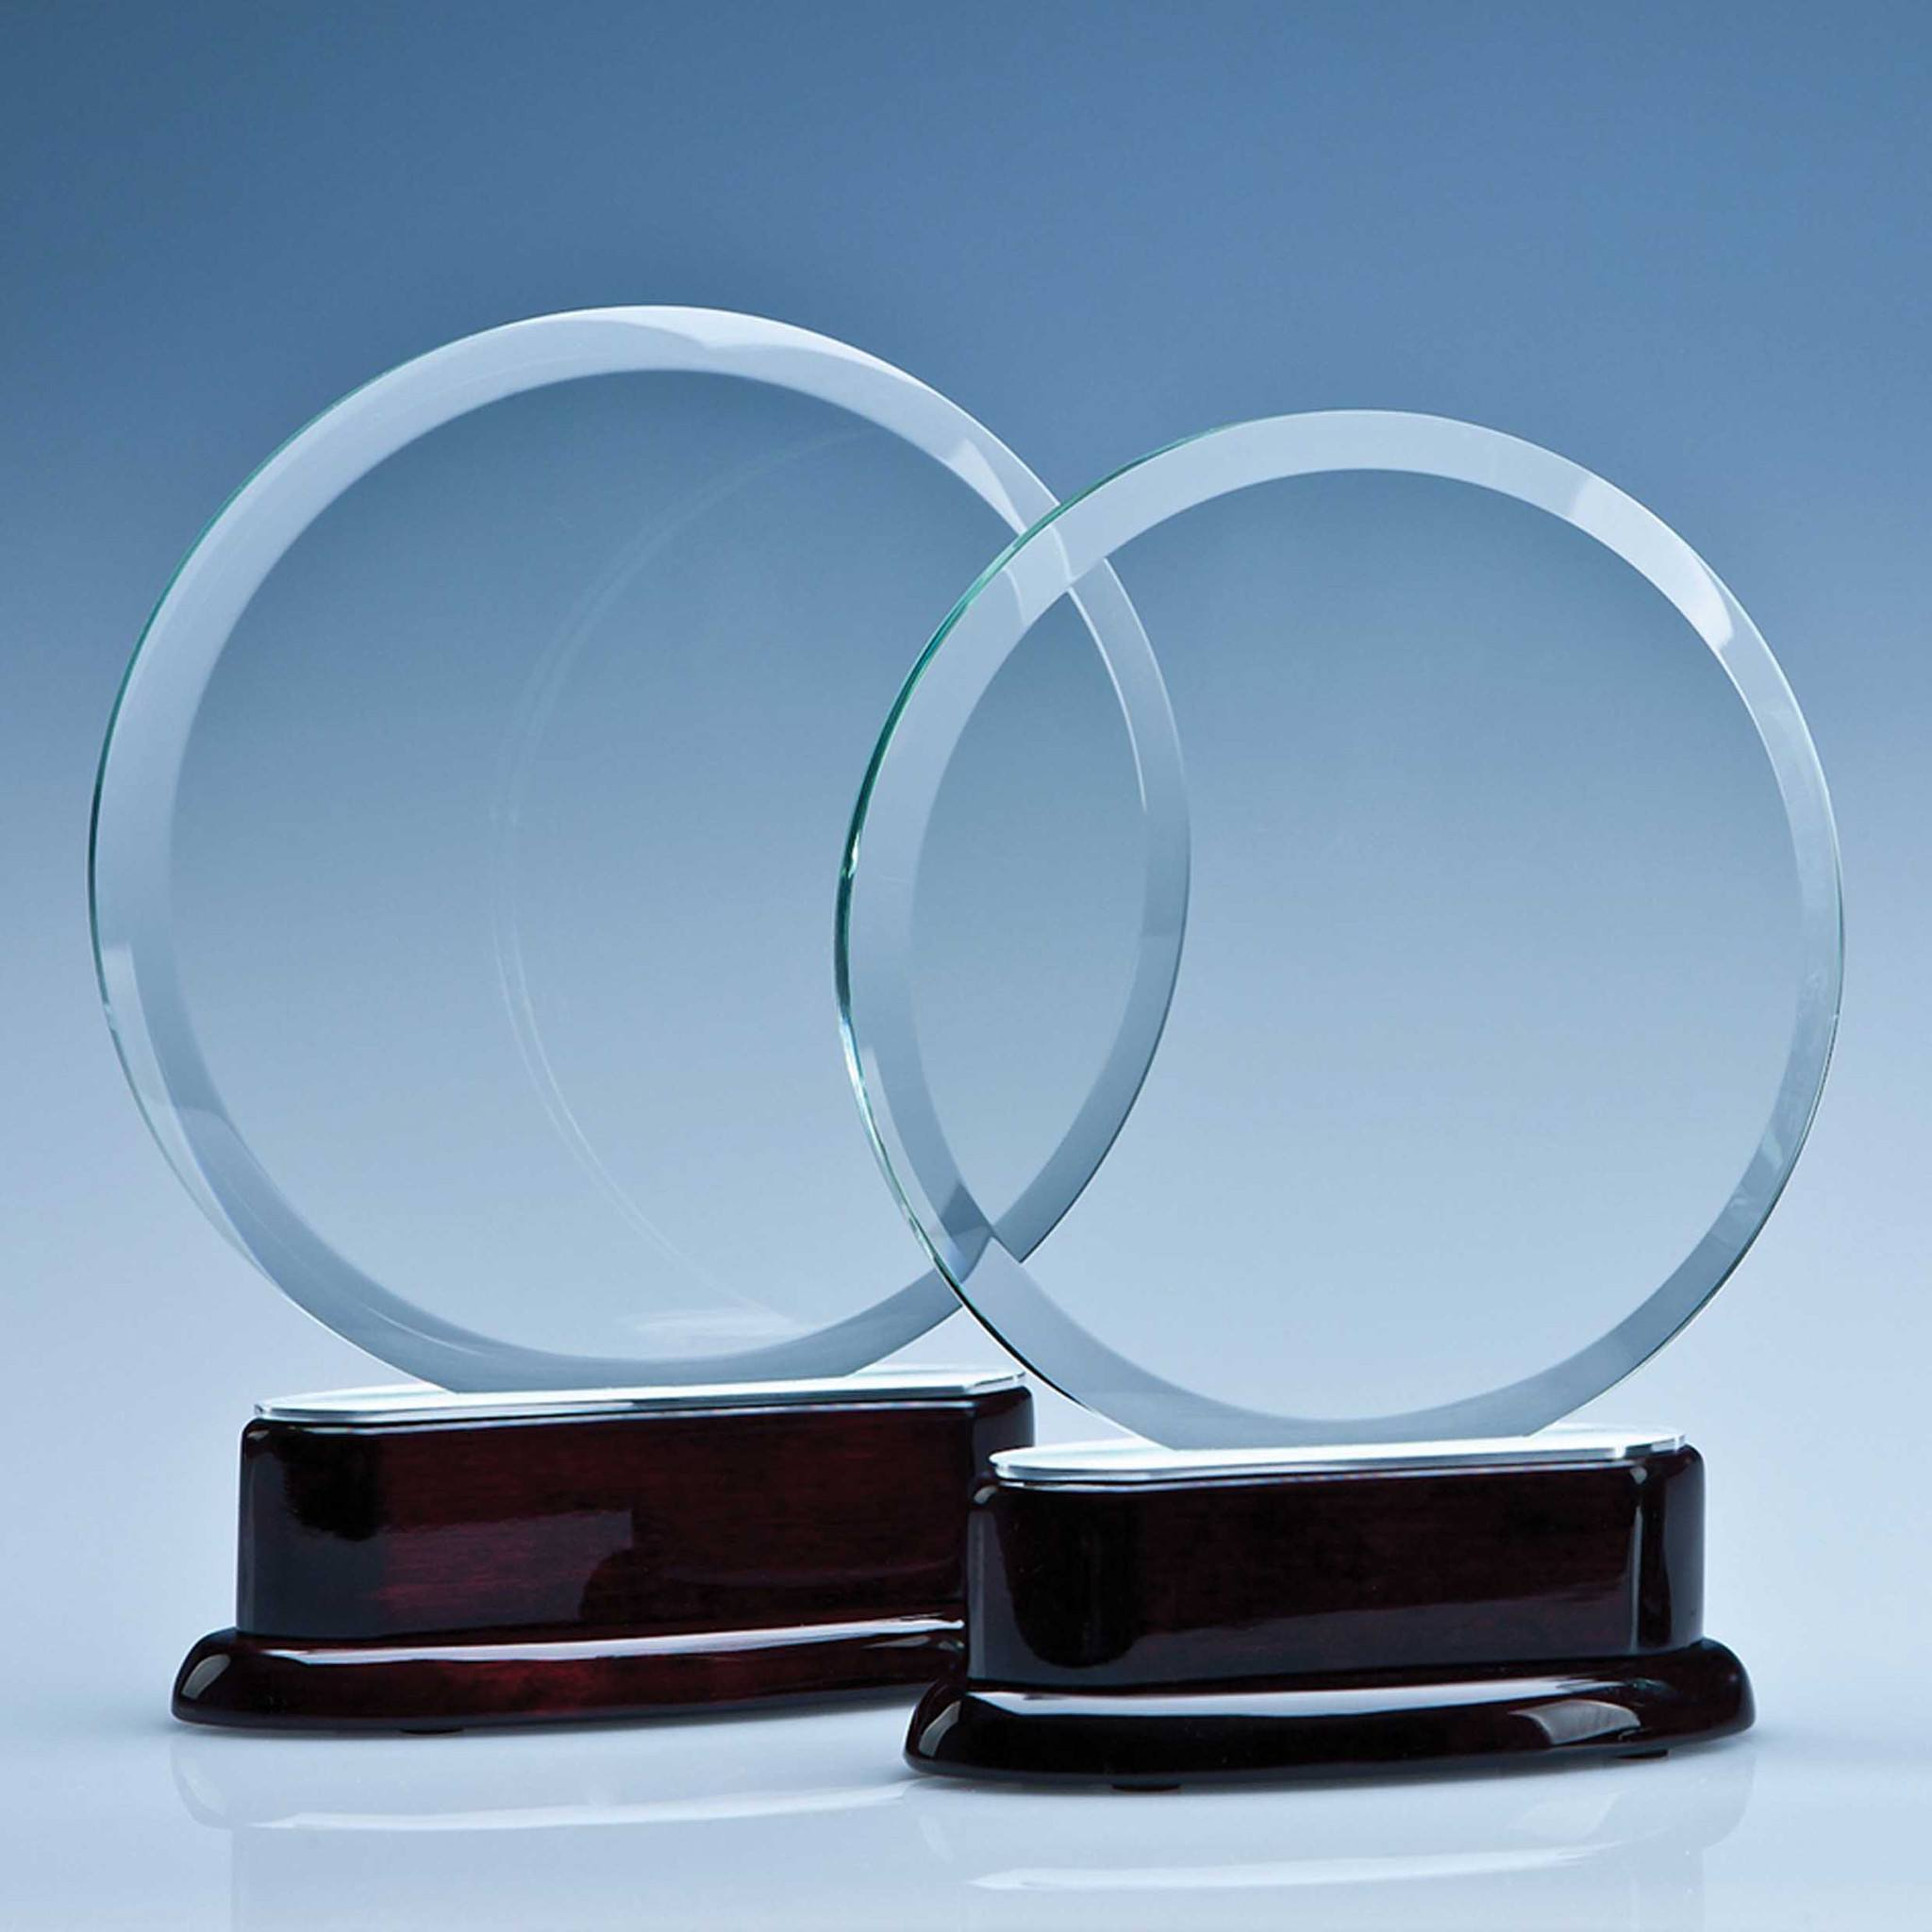 Circle on Rosewood Base Award Glass Awards Creative Awards